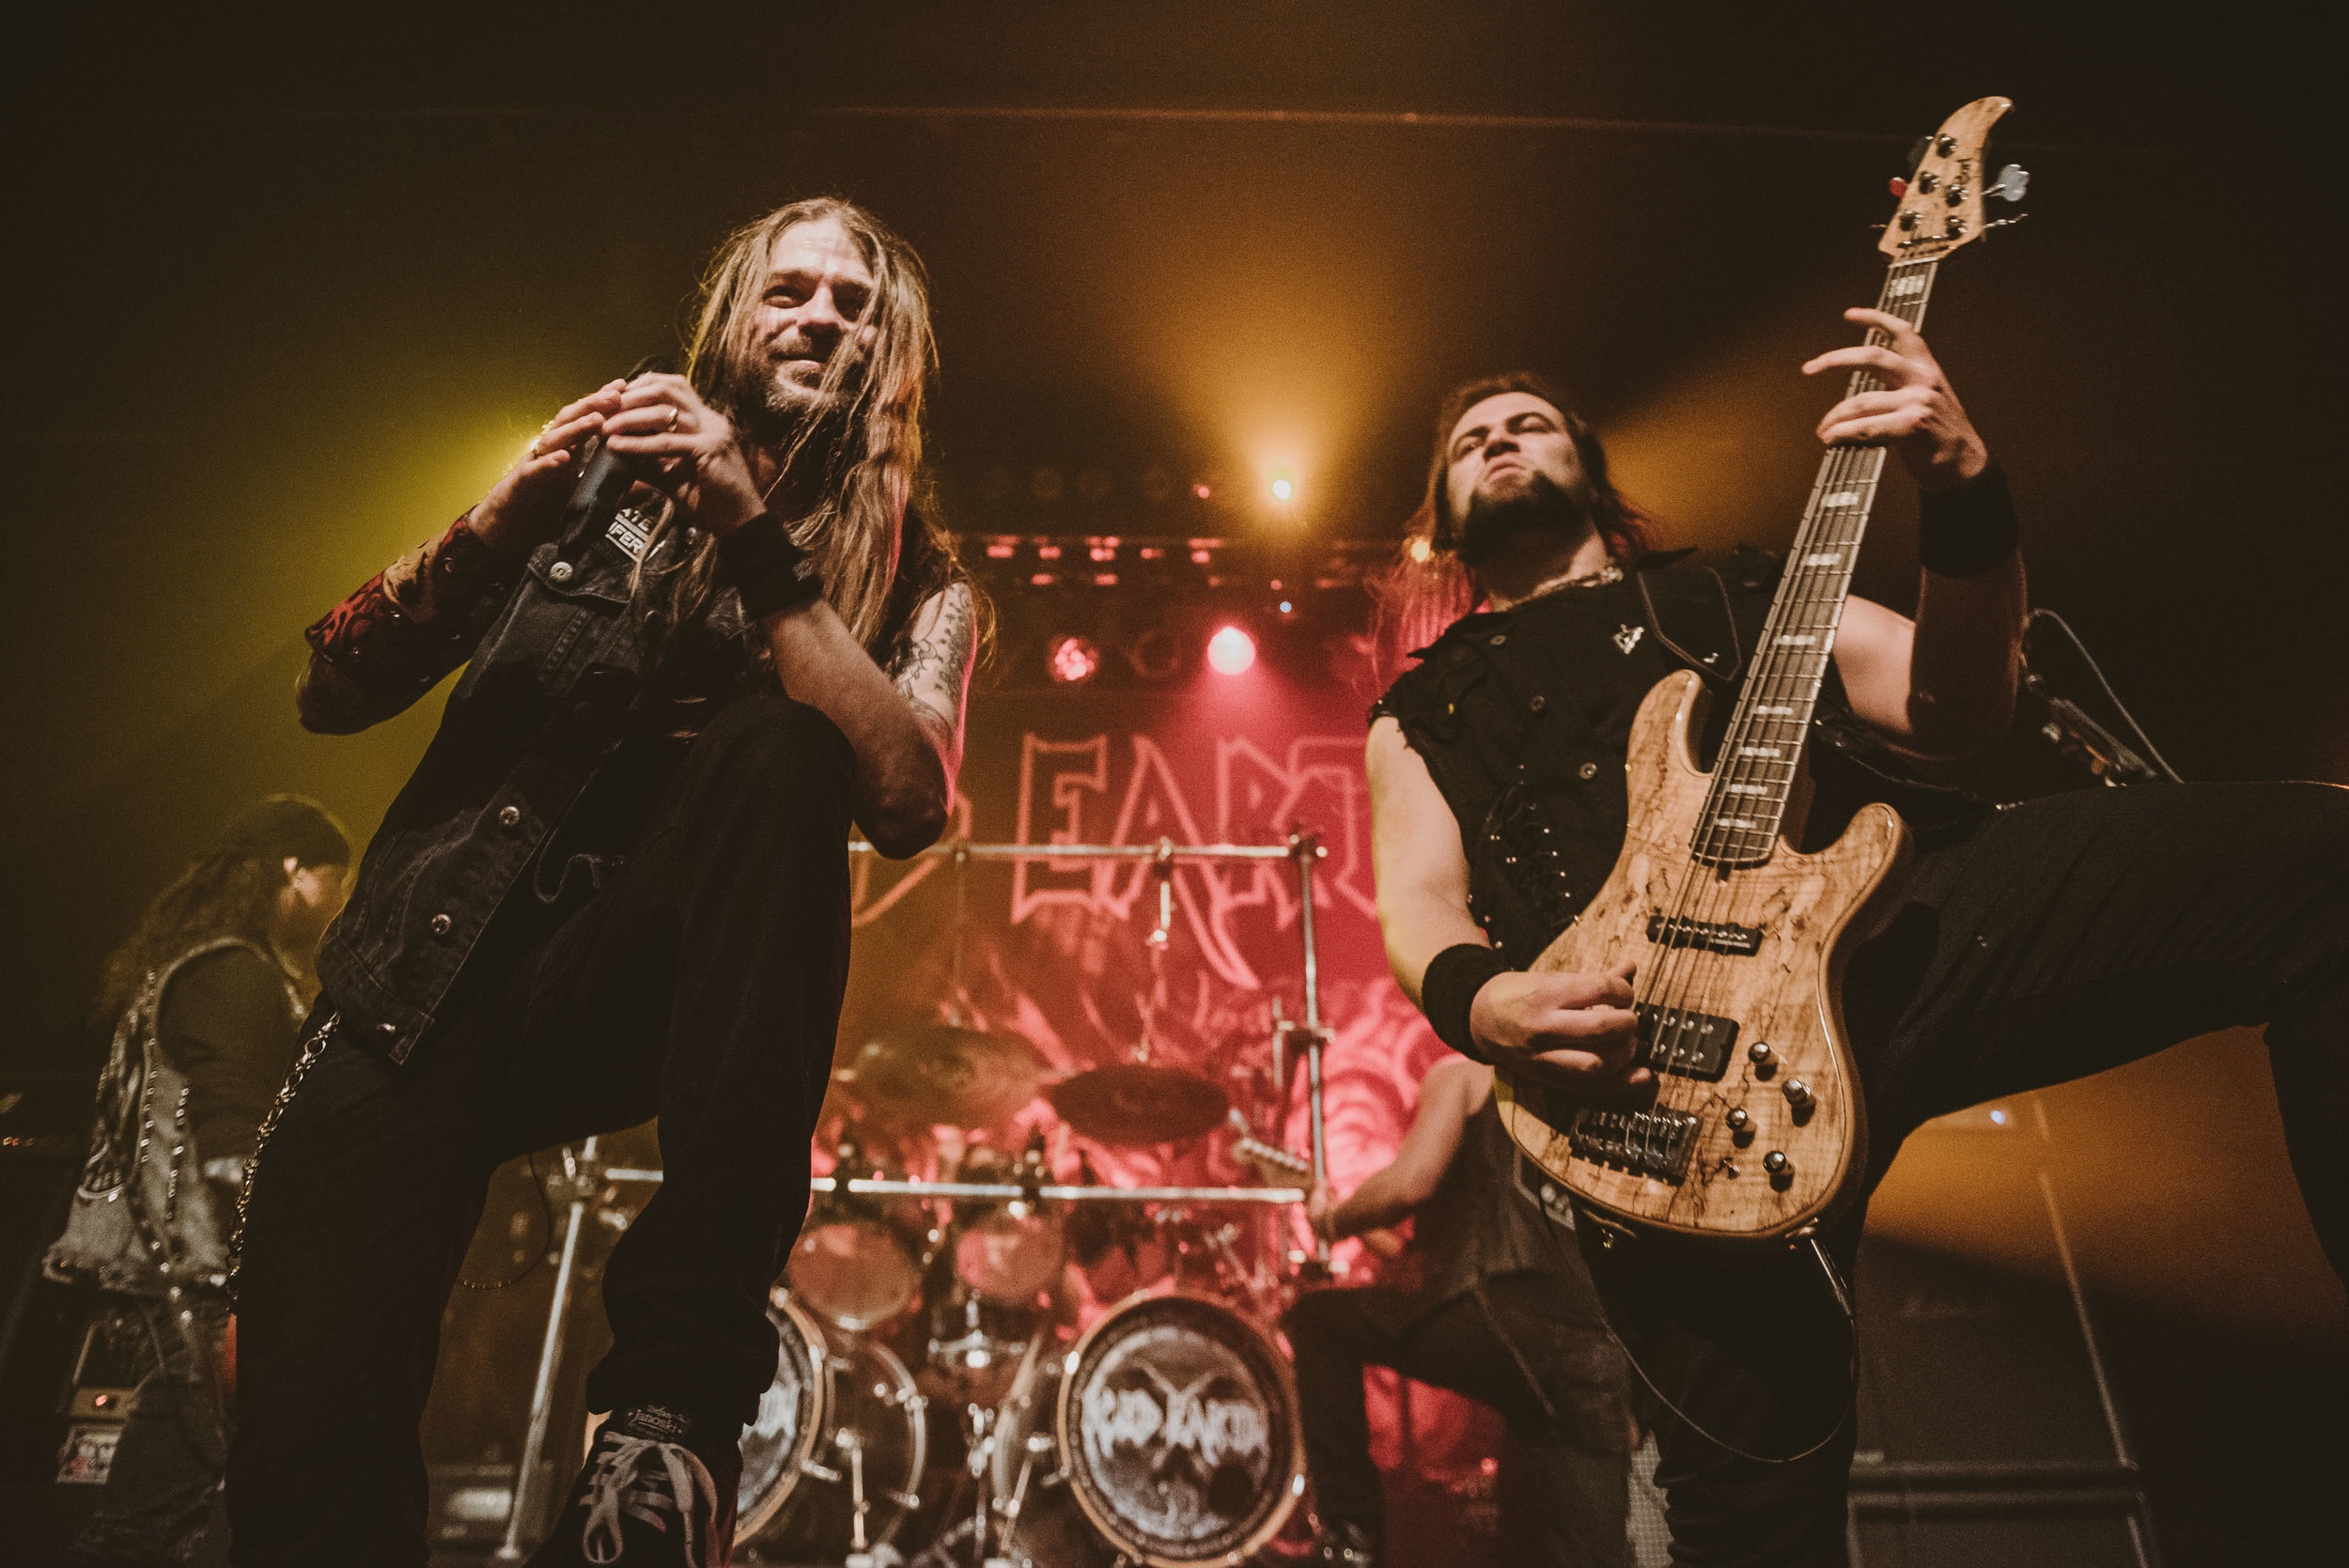 1_Iced_Earth-Rickshaw_Theatre-Timothy_Nguyen-20180304 (5 of 20).jpg